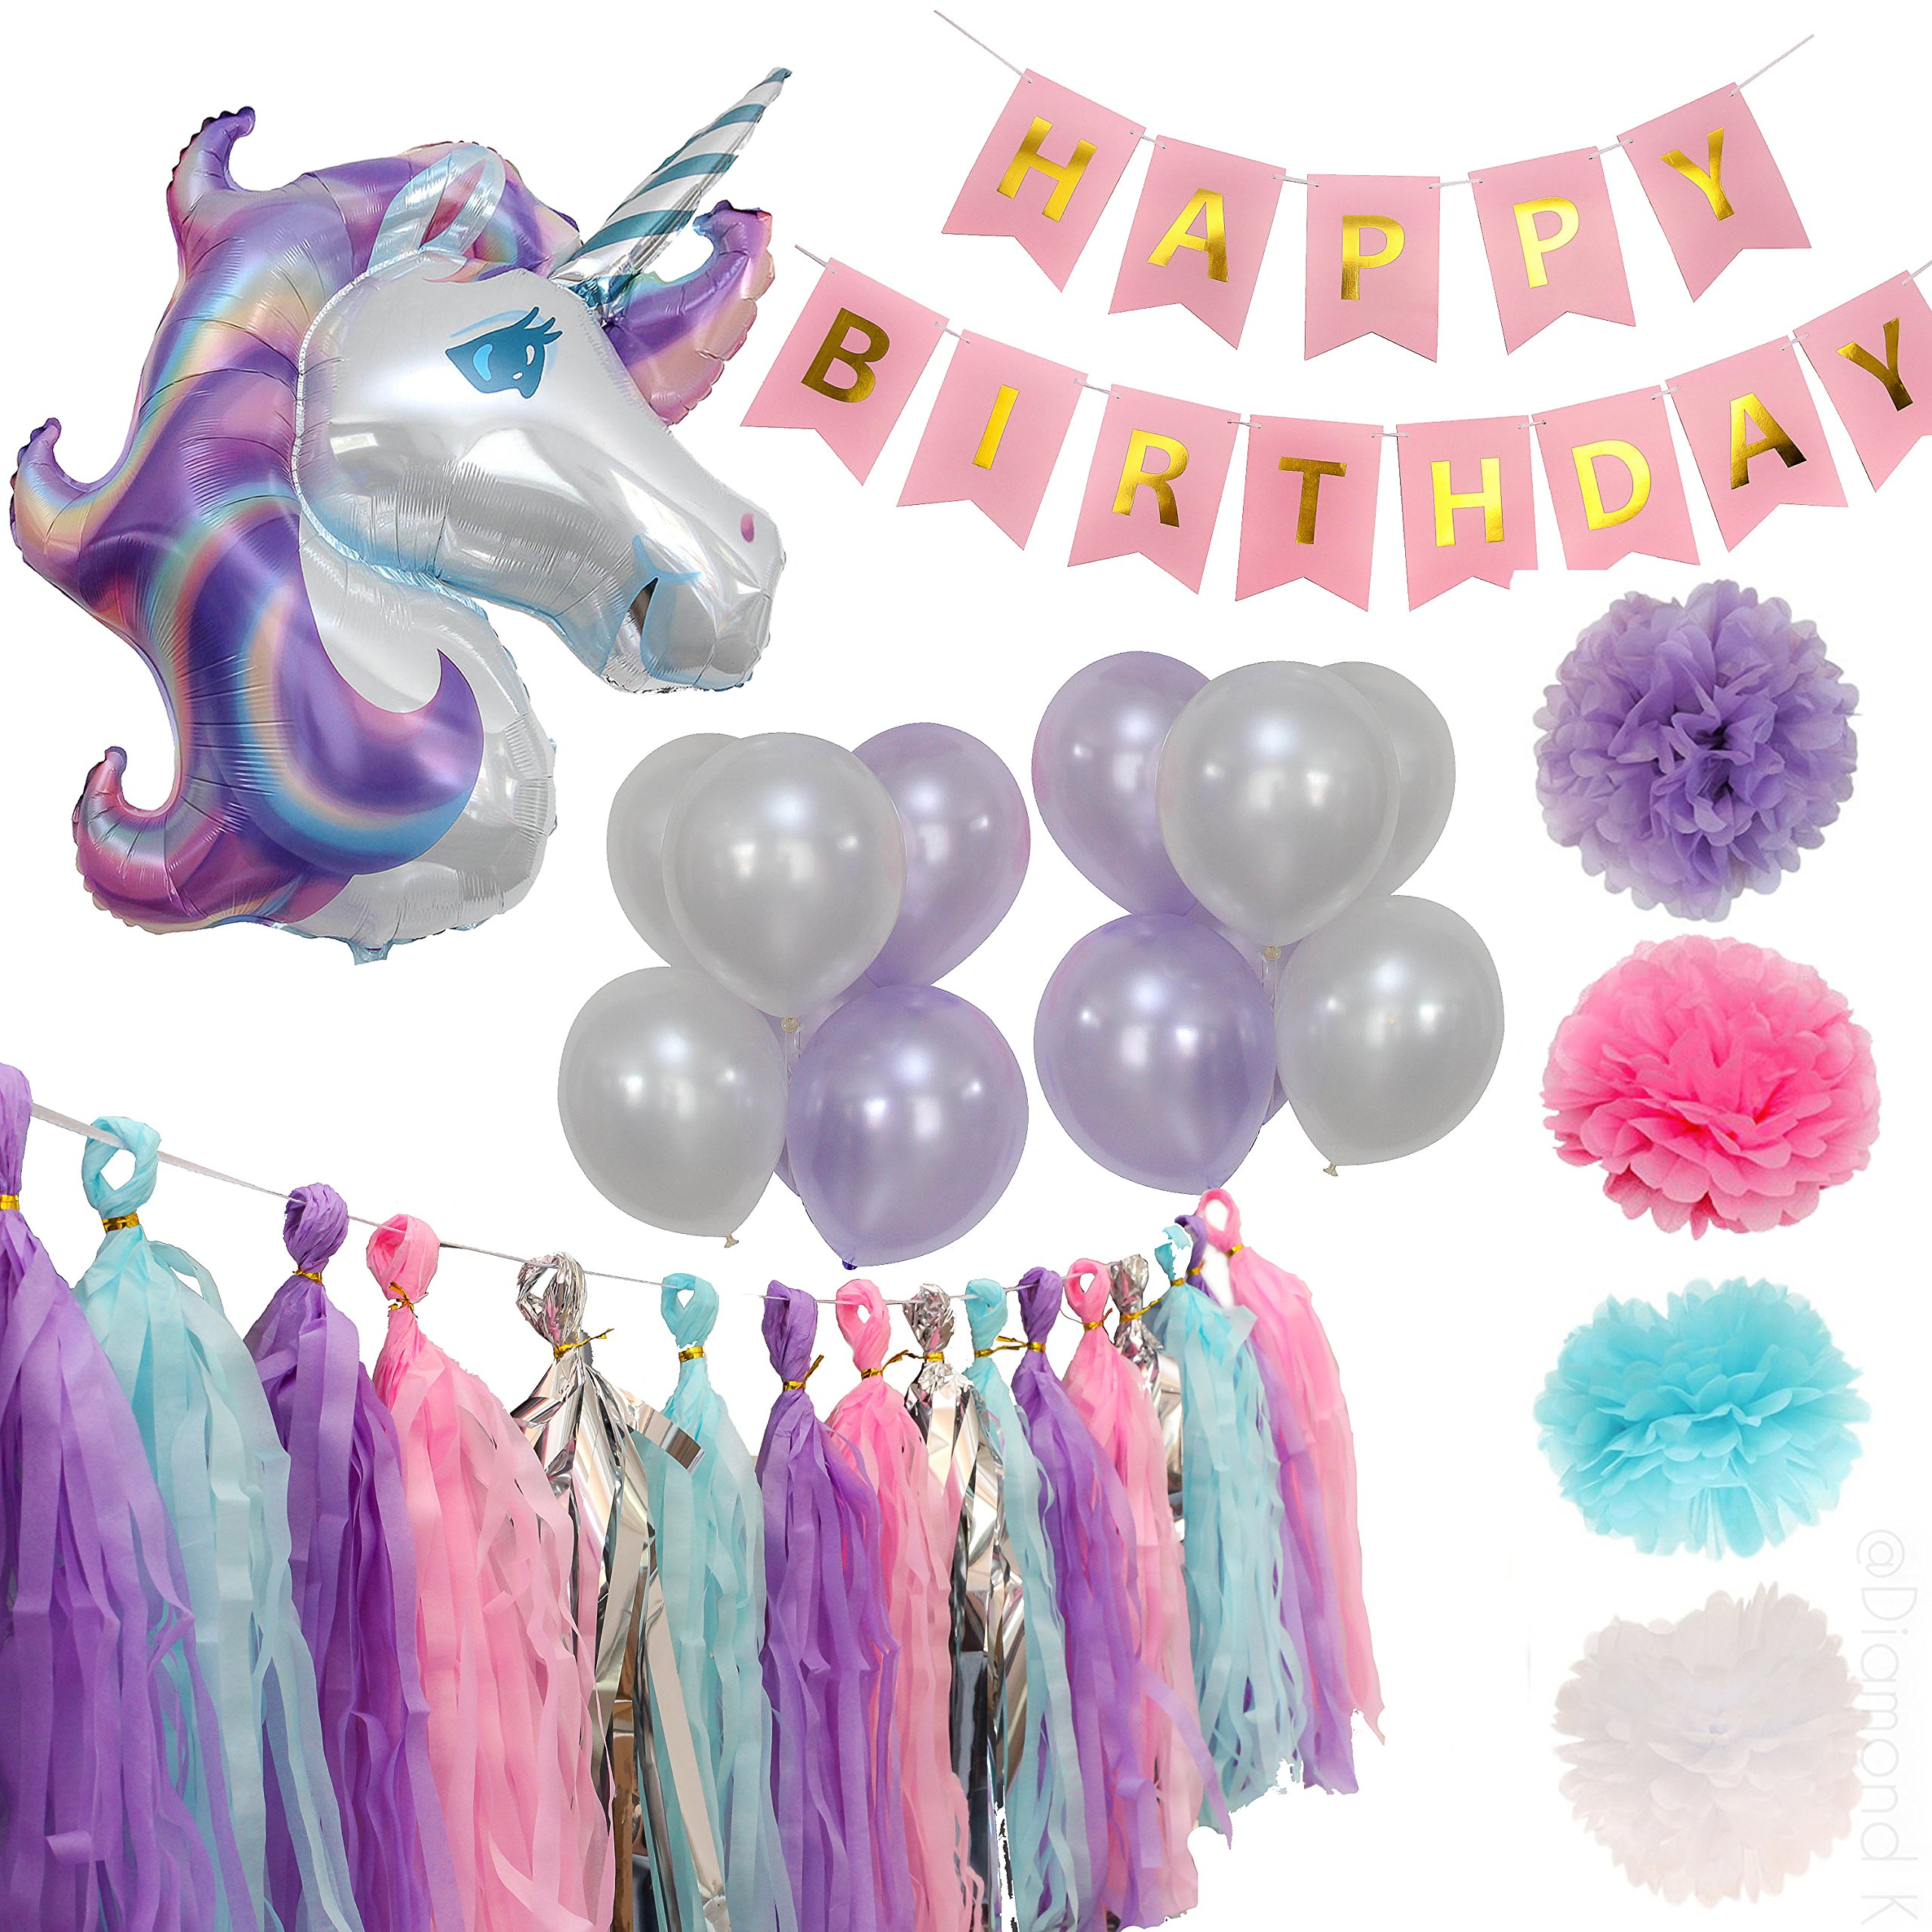 Party Maniak Unicorn Party Supplies Decorations for Girls with Banner, Foil and Latex Balloons, Tassels and Pom Pom (Silver)